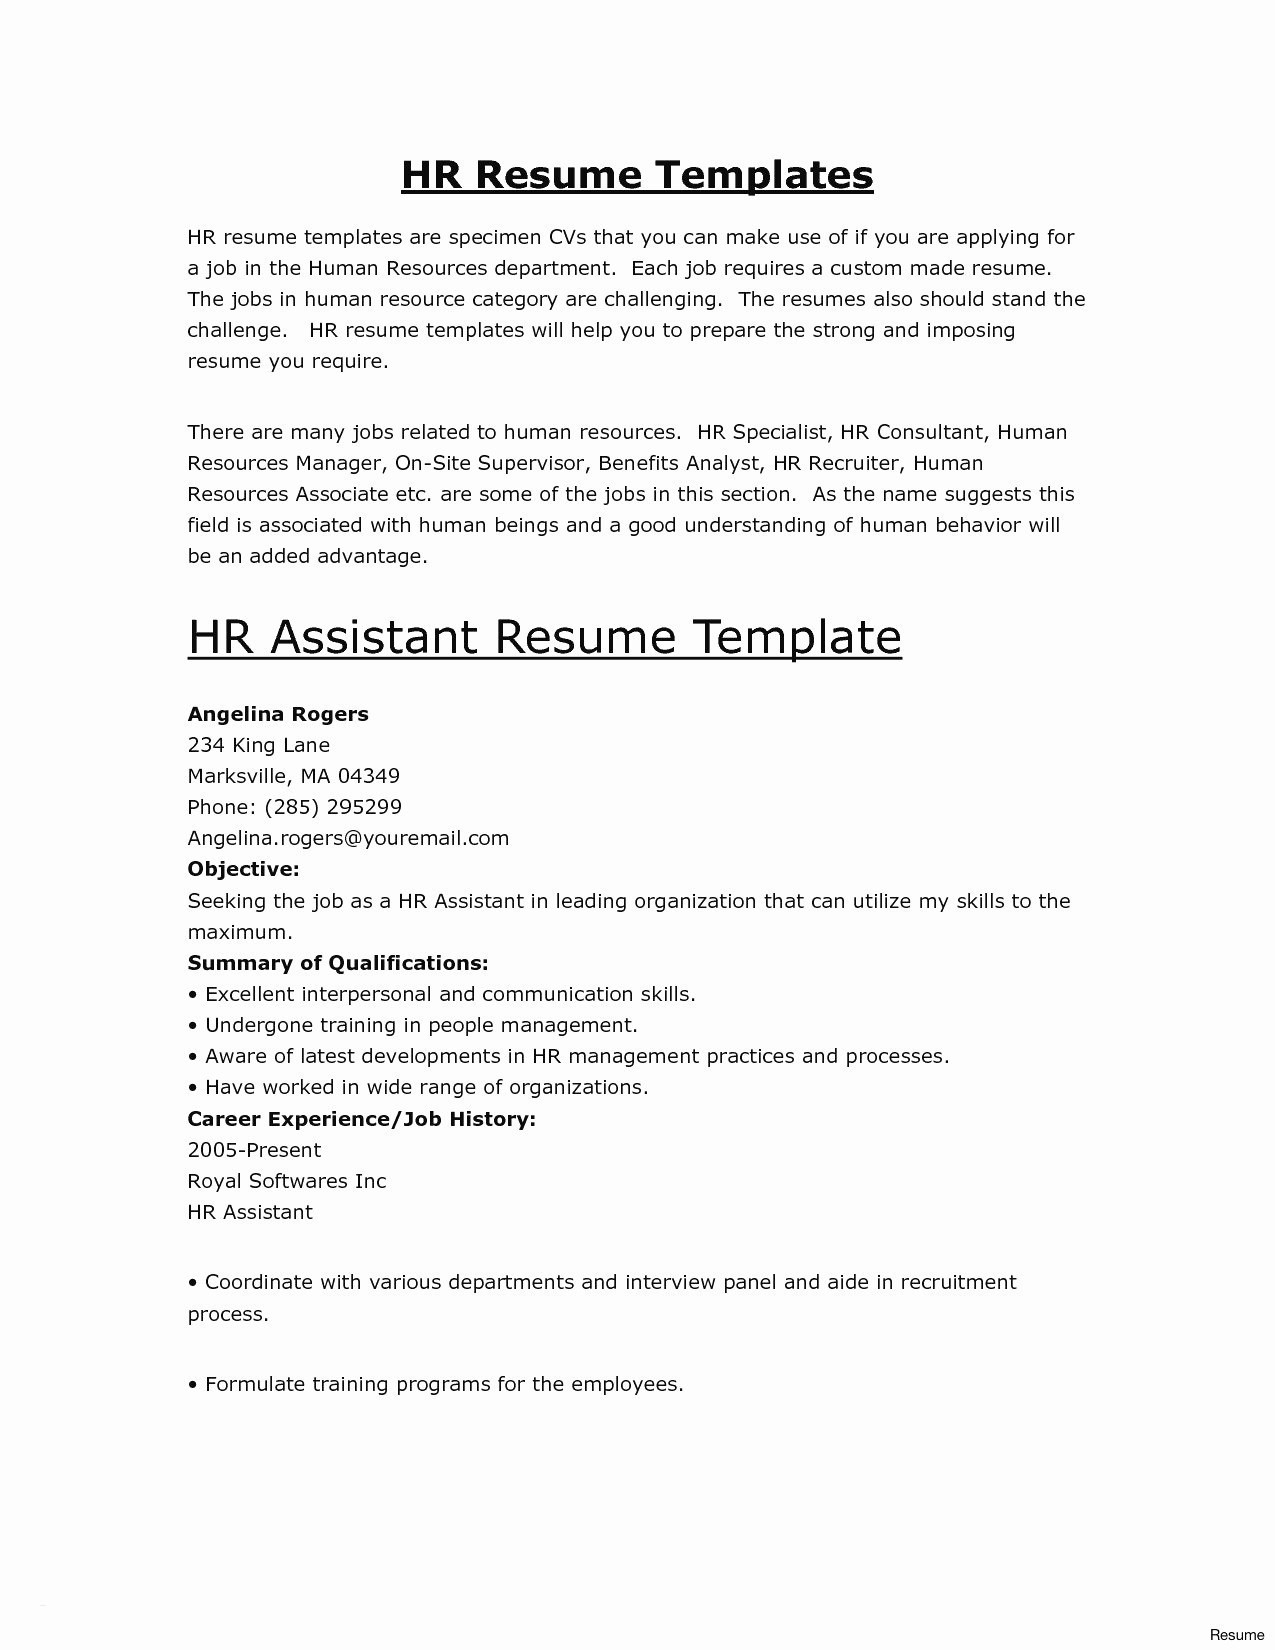 What Makes A Great Resume - Resume Job Description Best Self Employed Resume New Luxury